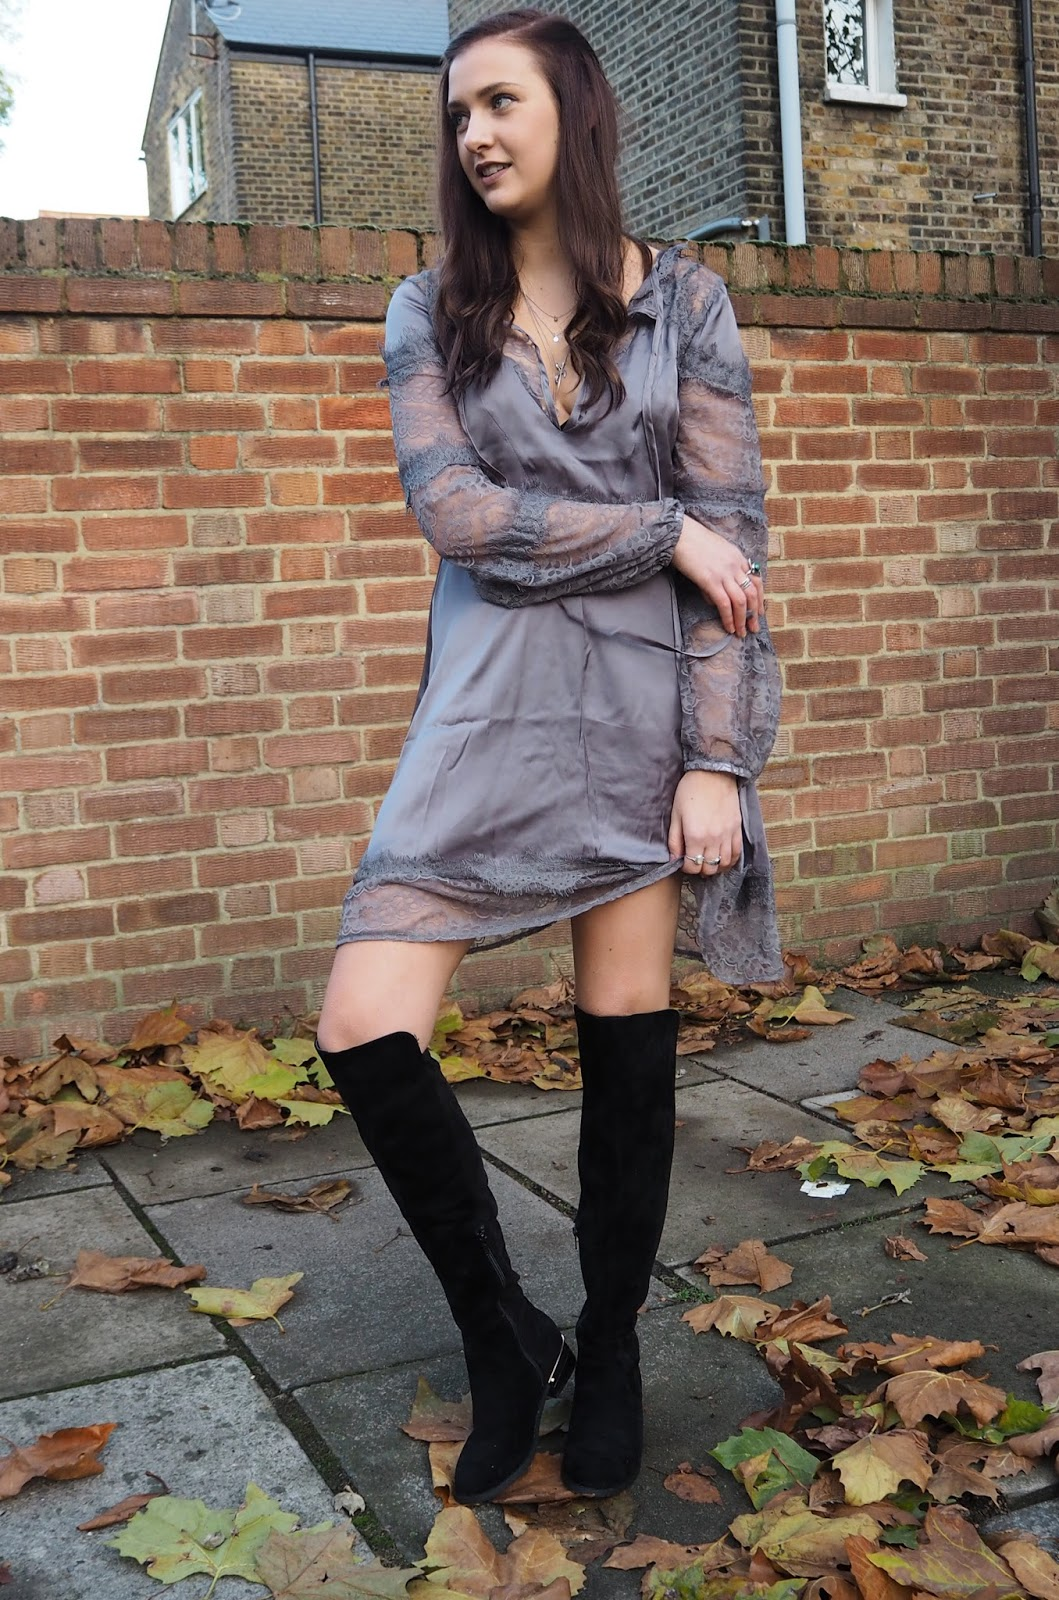 The Silk Number // Boohoo Dress Of The Month - November // Lauren Rose Bell // London Fashion, Style & Lifestyle Blogger // AW16 TREND